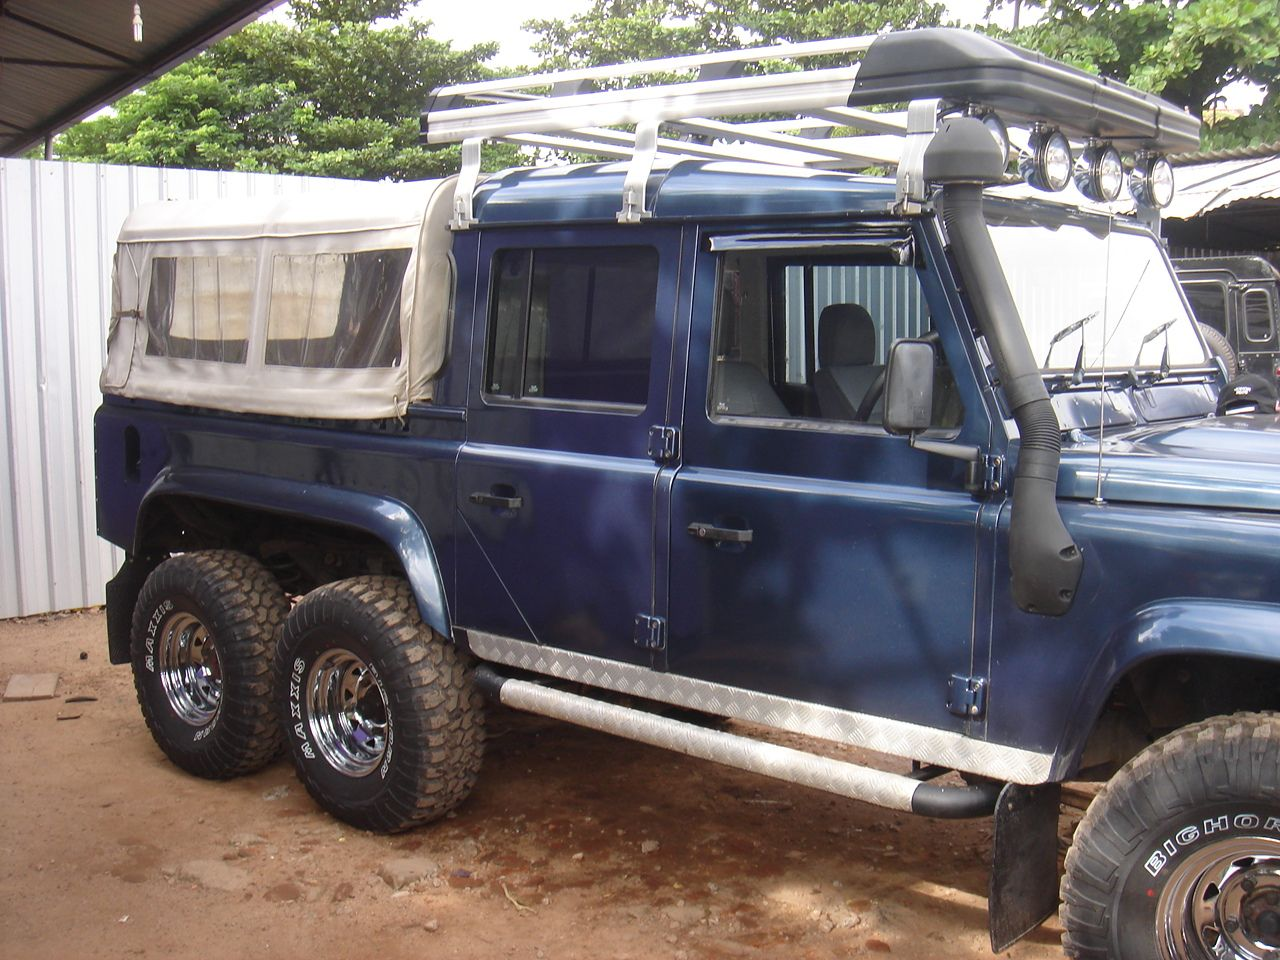 Pin By Chathura Yasantha On Modified Vehicle In Sri Lanka Land Rover Defender Land Rover Land Rover Overland